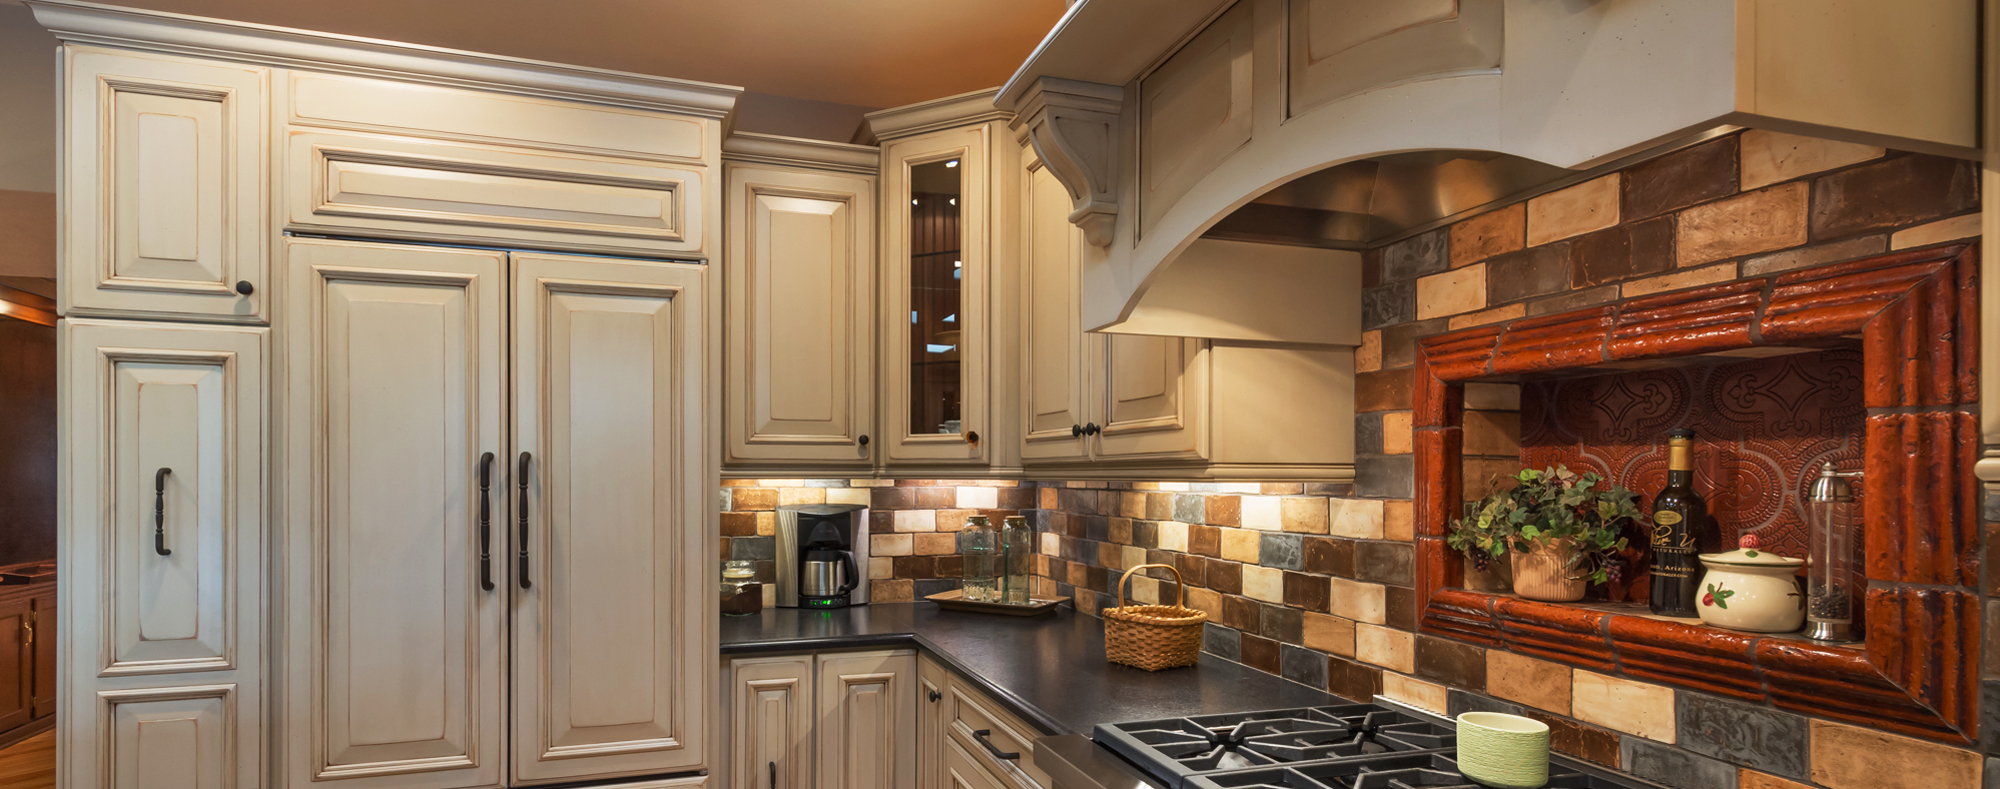 Kitchen Cabinets Blackmarsh Road Canyon Cabinetry Kitchen Design Bath Remodel